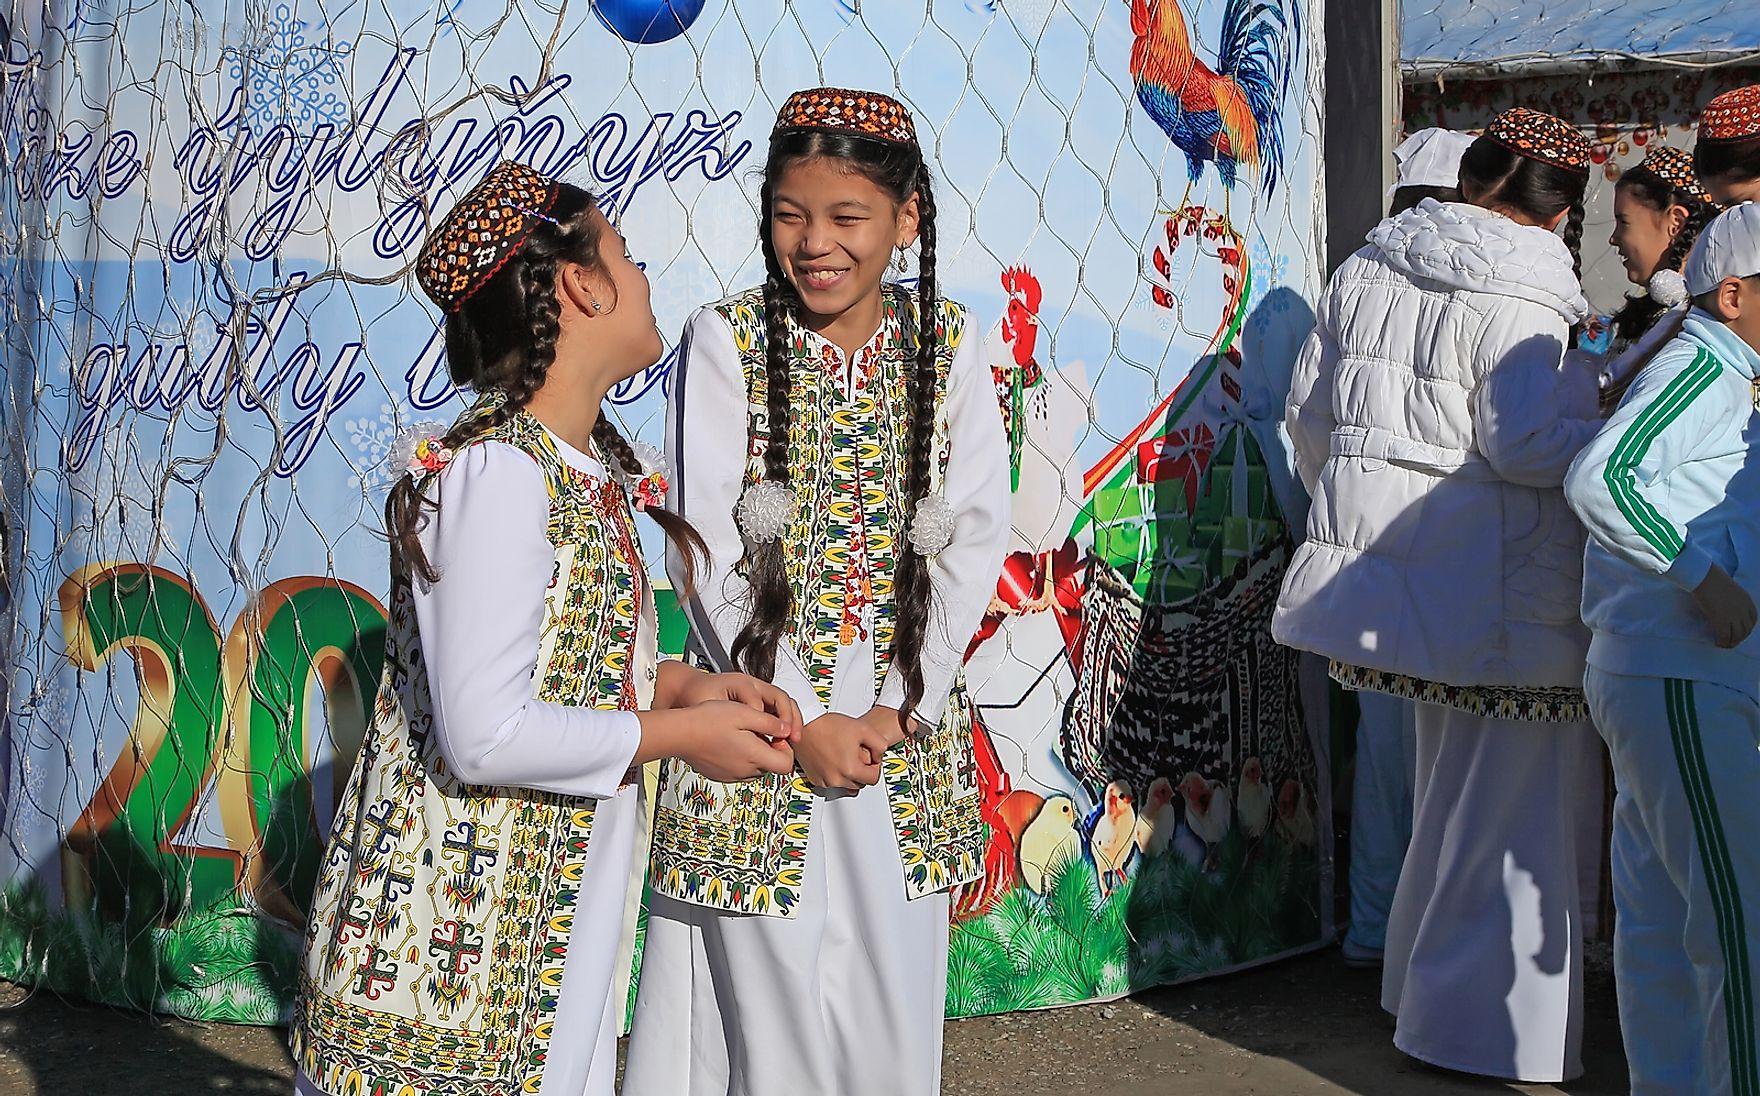 Celebrations in Turkmenistan are allowed, but for years certain types of festive activities were not. velirina / Shutterstock.com.